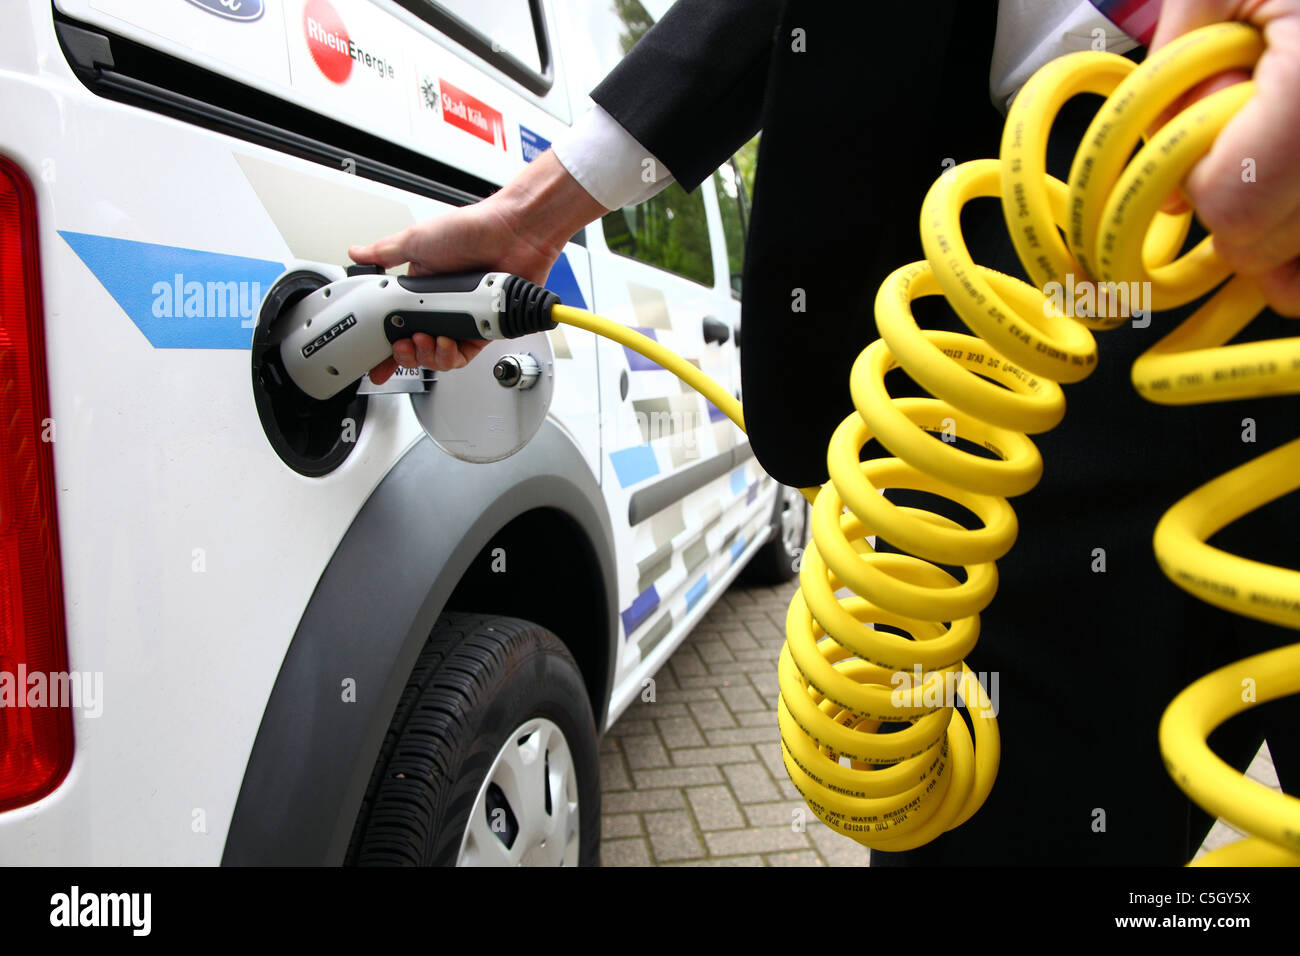 Electric vehicle, van. Powered by electricity. Charging the batteries. - Stock Image